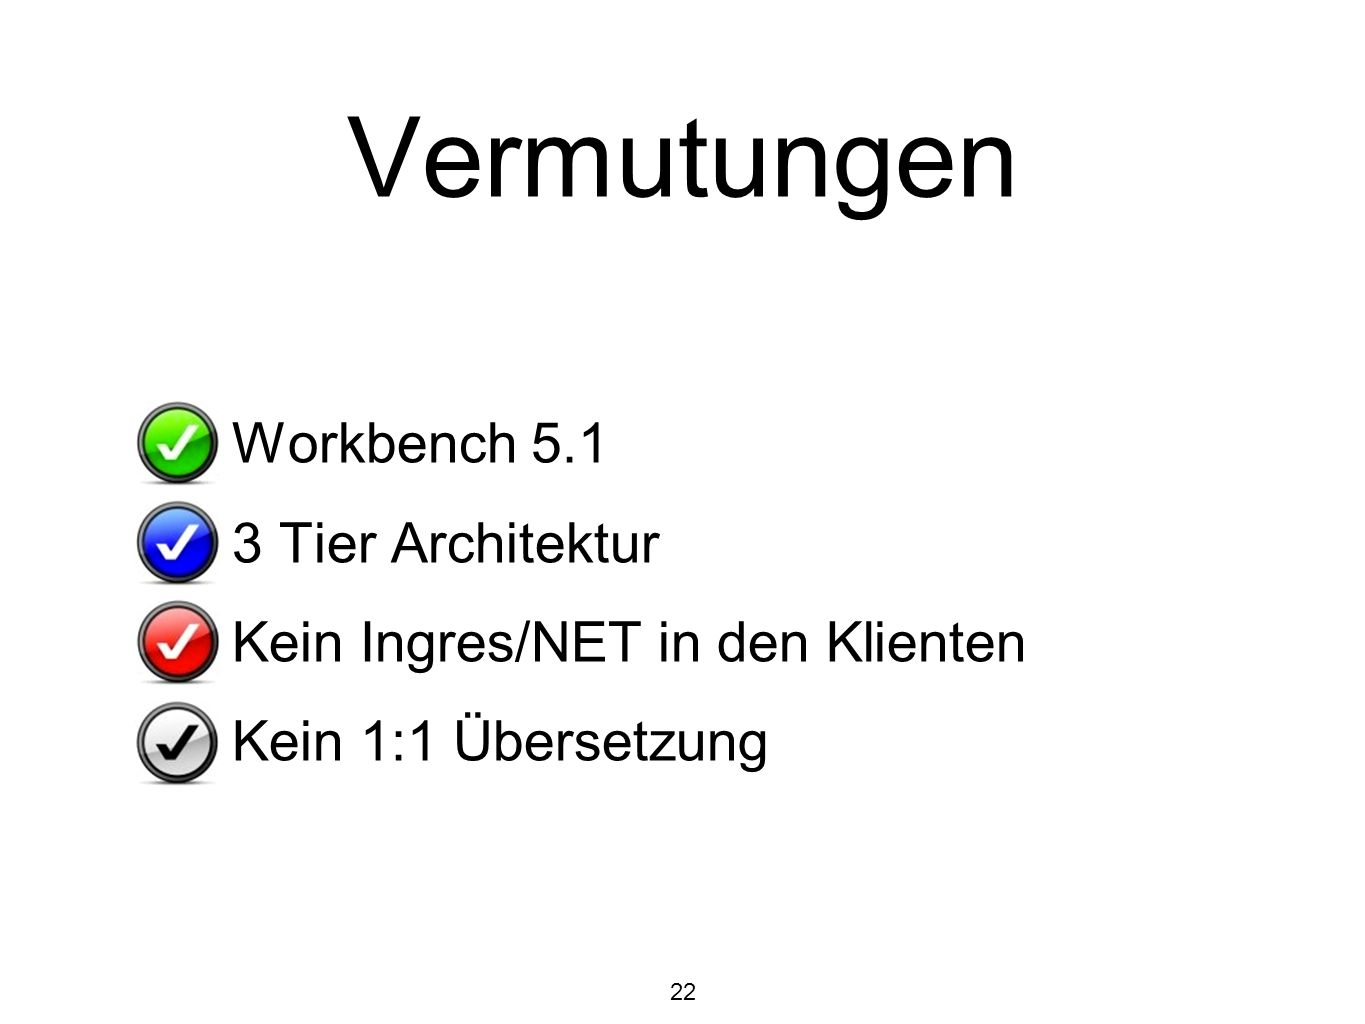 Vermutungen Workbench Tier Architektur